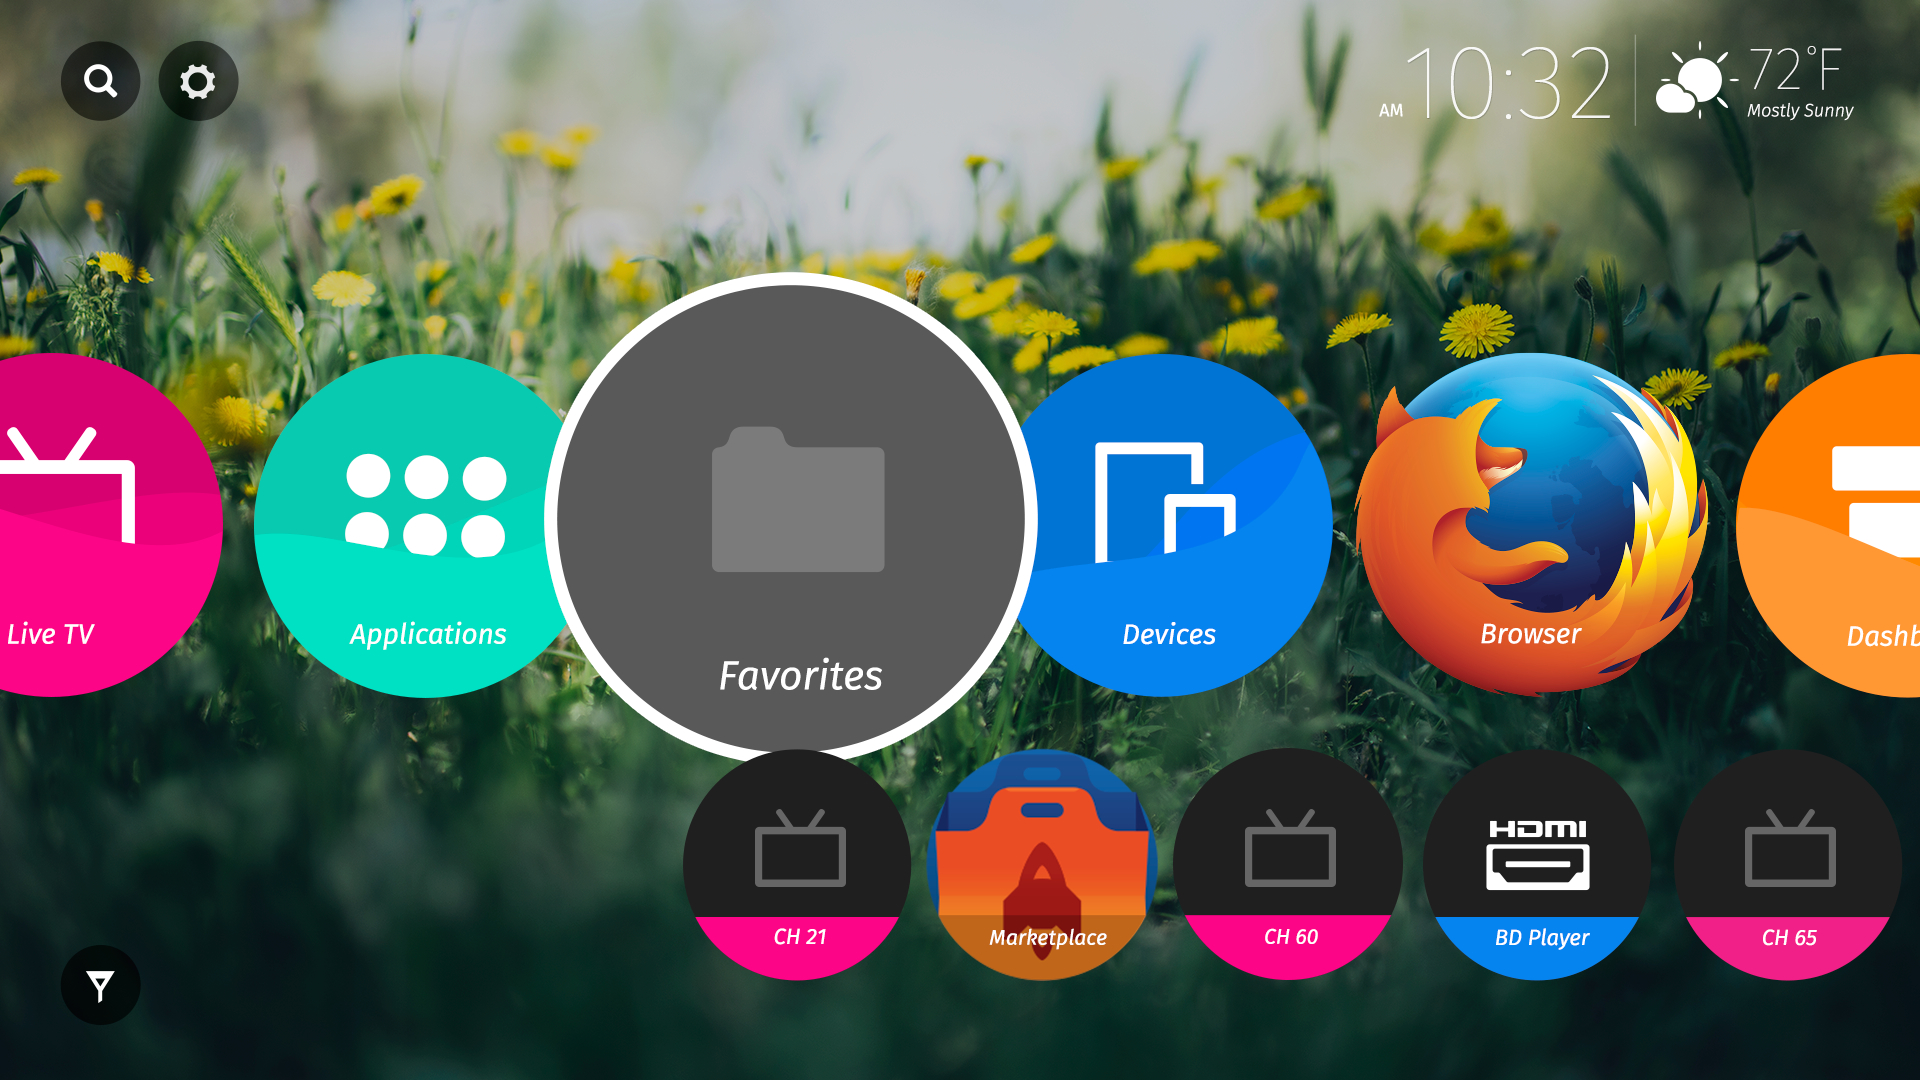 https://blog.mozilla.org/press/files/2015/01/Life-Screen-and-Firefox-OS-Customizing-Home-Screen.jpg